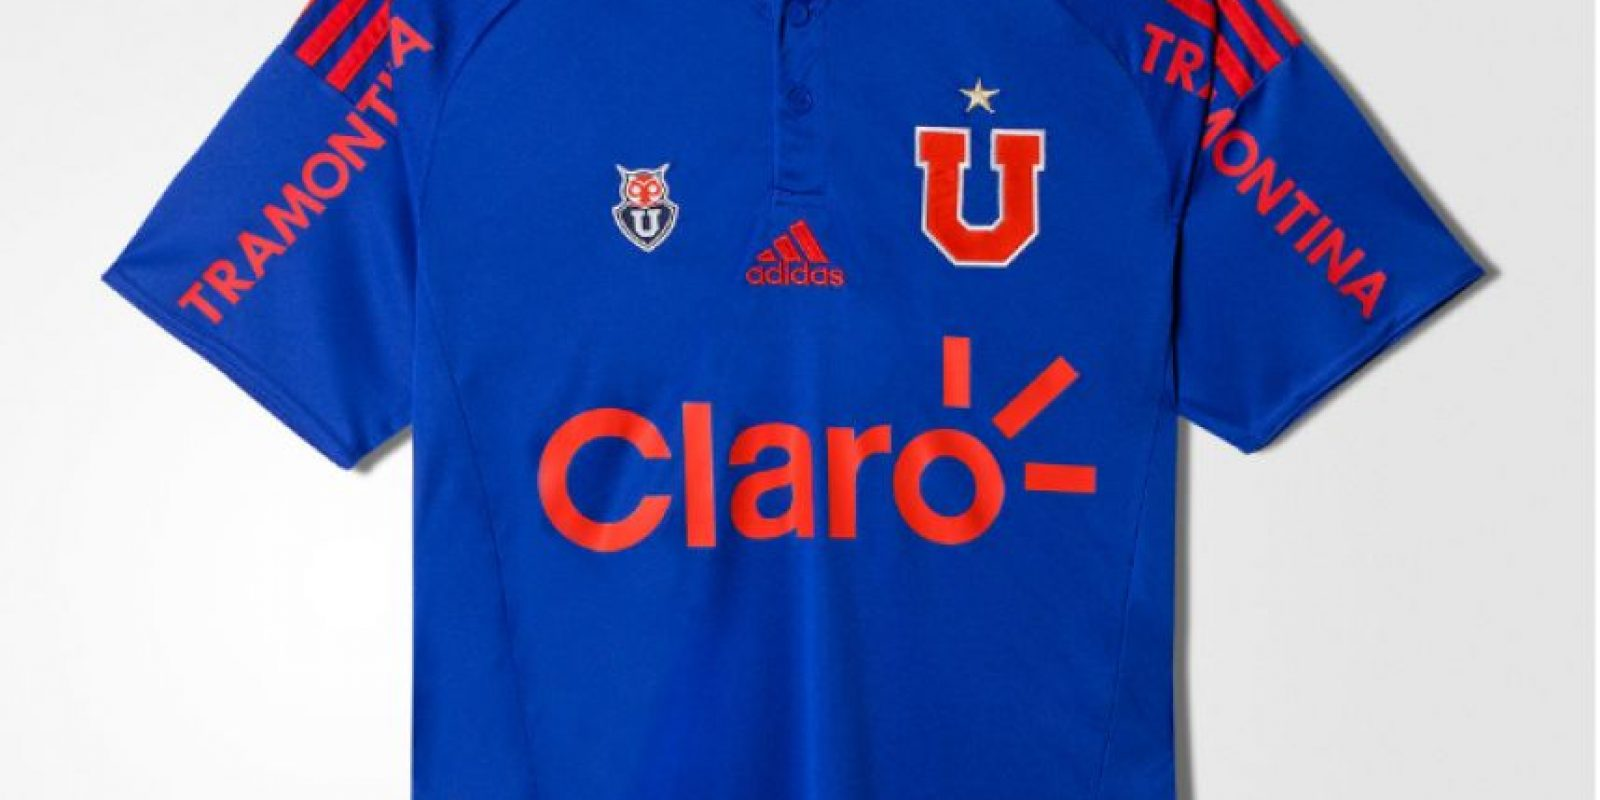 5.- Universidad de Chile-Chile (345.000)